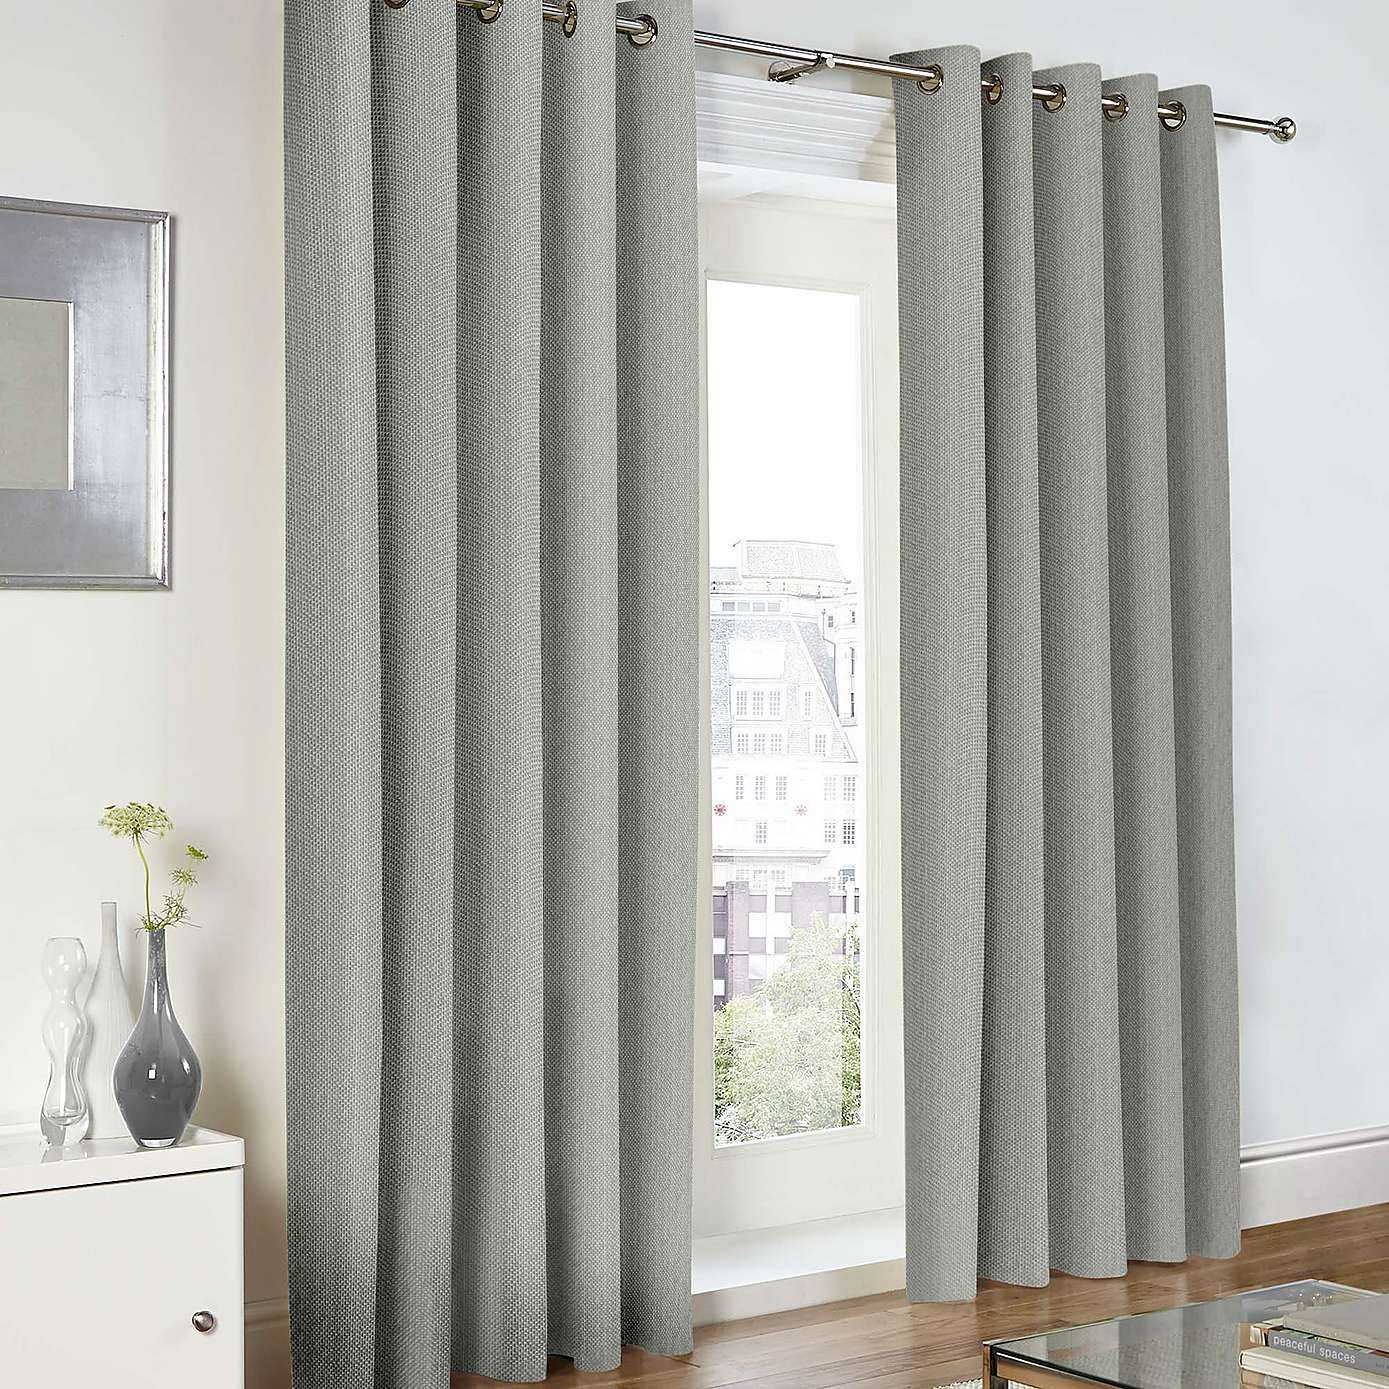 Baxter Grey Lined Eyelet Curtains Dunelm Curtains S